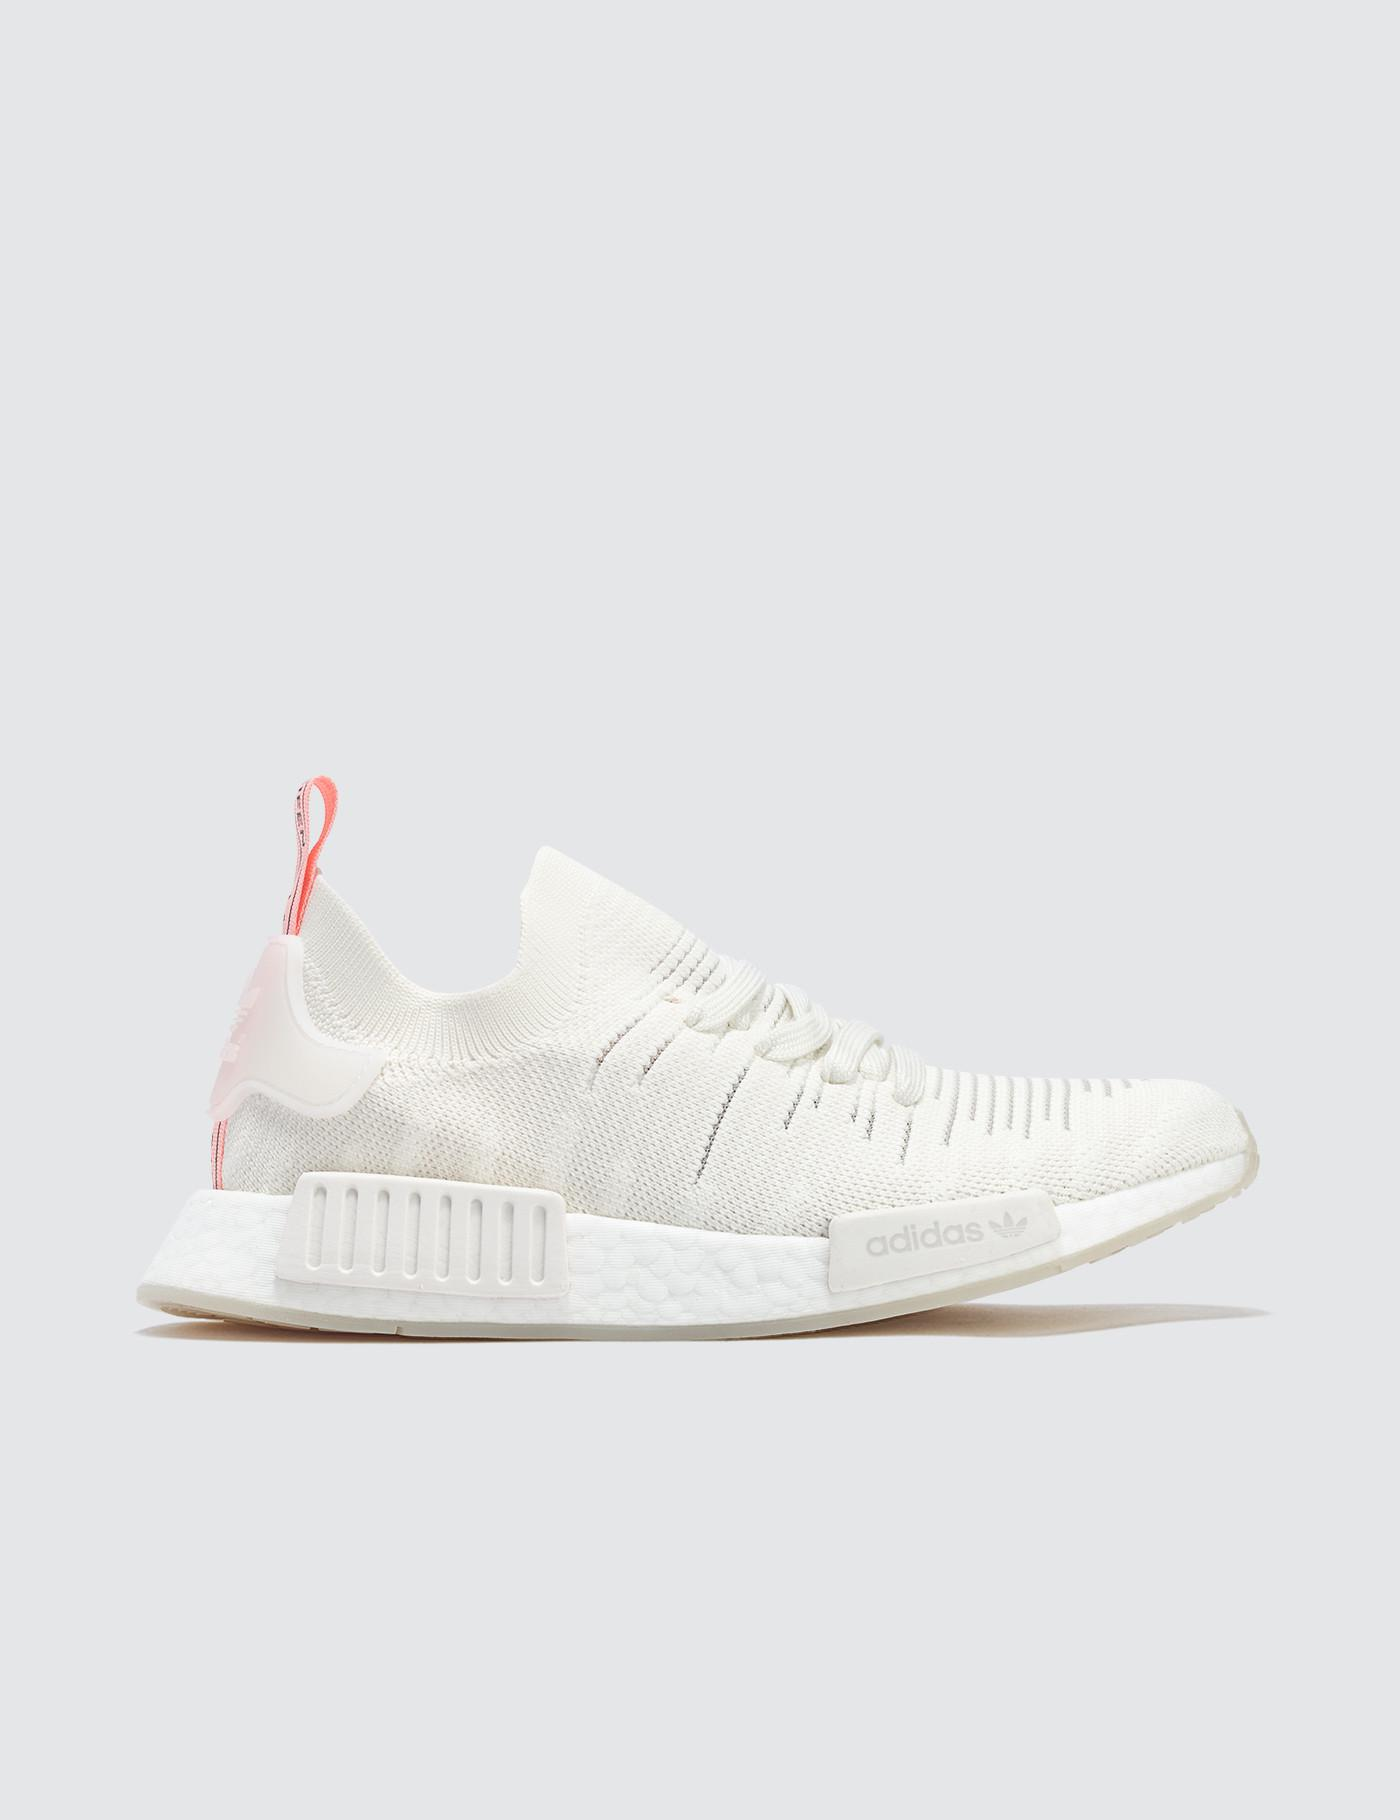 4e57988d2 Adidas Originals Nmd Cs1 Pk W in White - Lyst